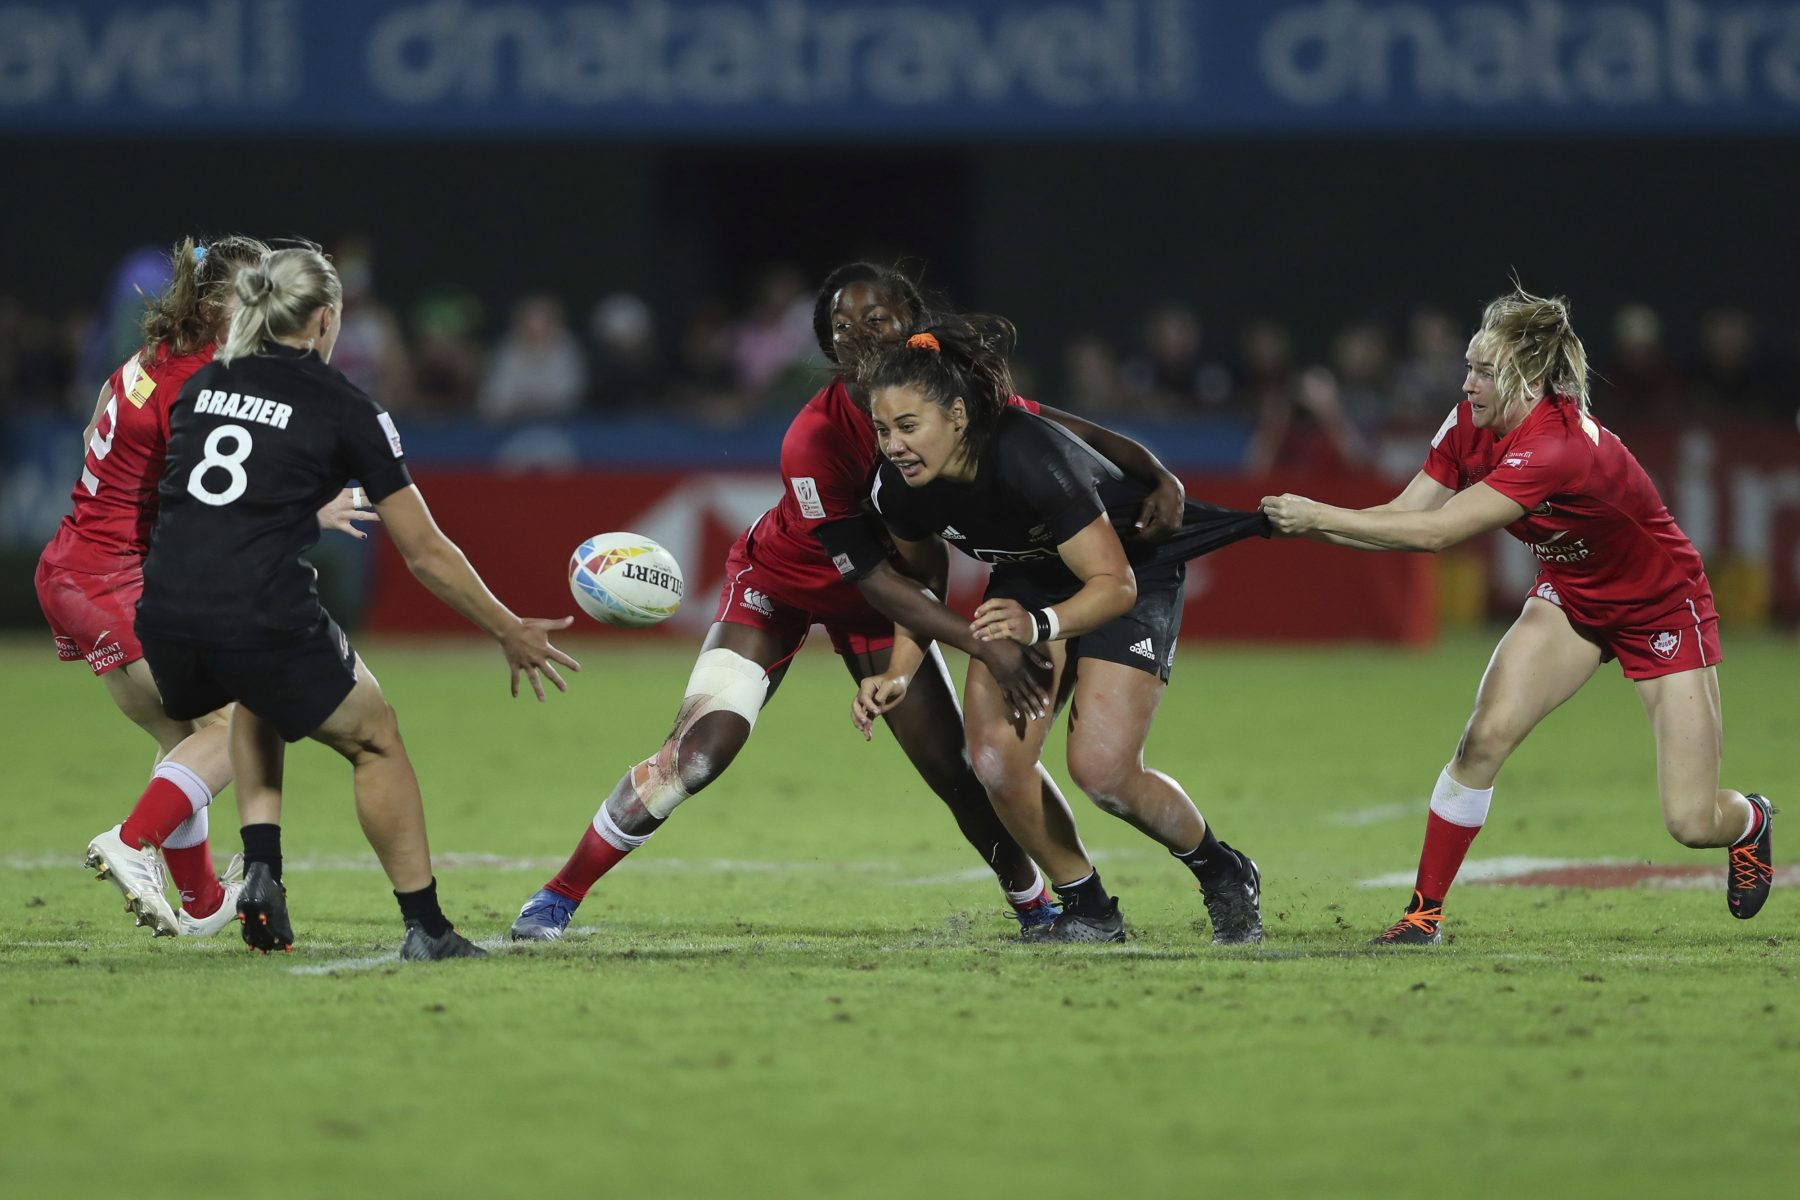 New Zealand's Shakira Baker passes the ball in the final match against Canada at the Emirates Airline Rugby Sevens in Dubai, United Arab Emirates, Saturday, Dec.7, 2019. (AP Photo/Kamran Jebreili)